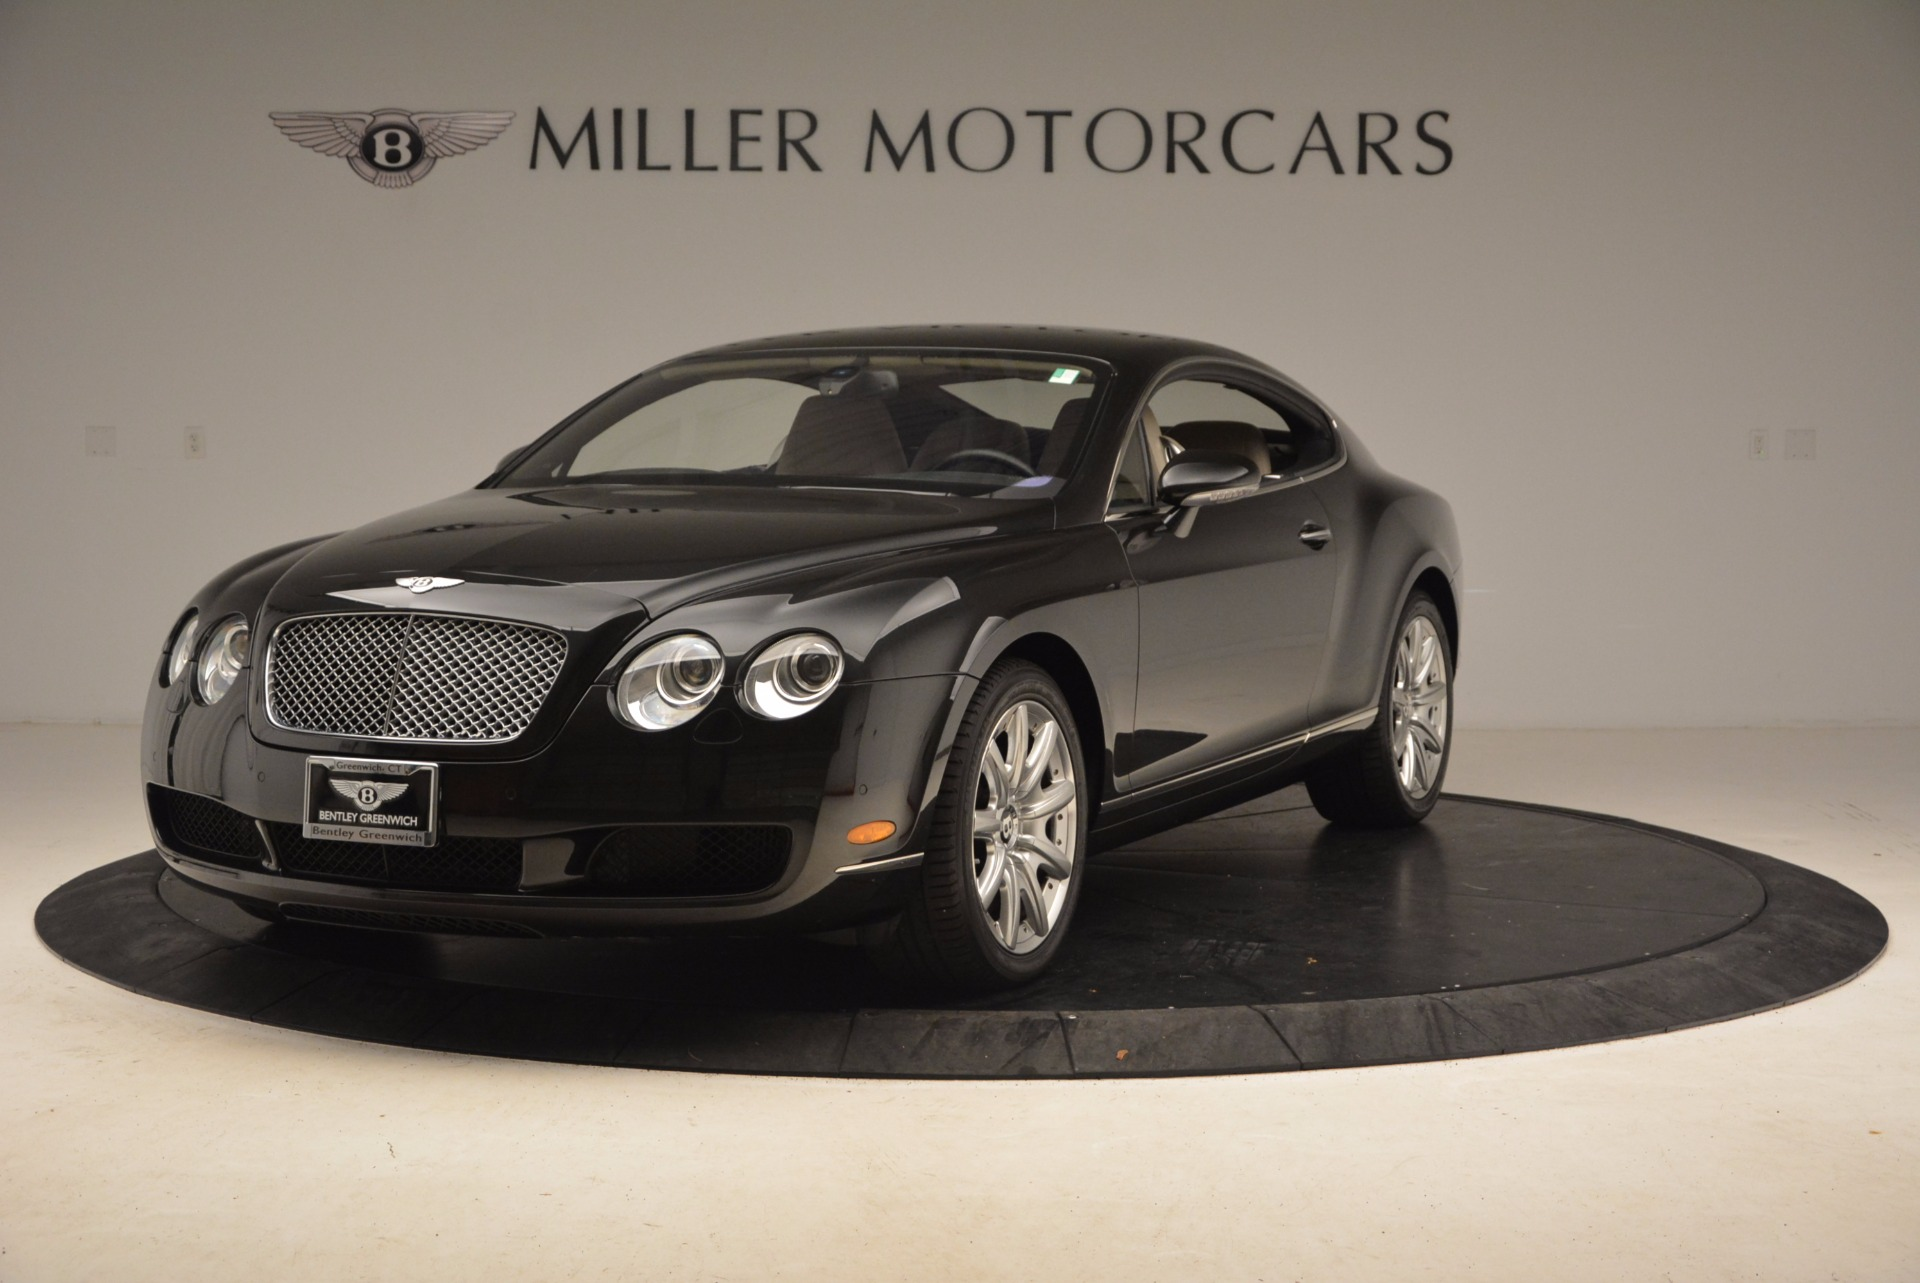 Used 2005 Bentley Continental GT W12 for sale Sold at Bentley Greenwich in Greenwich CT 06830 1